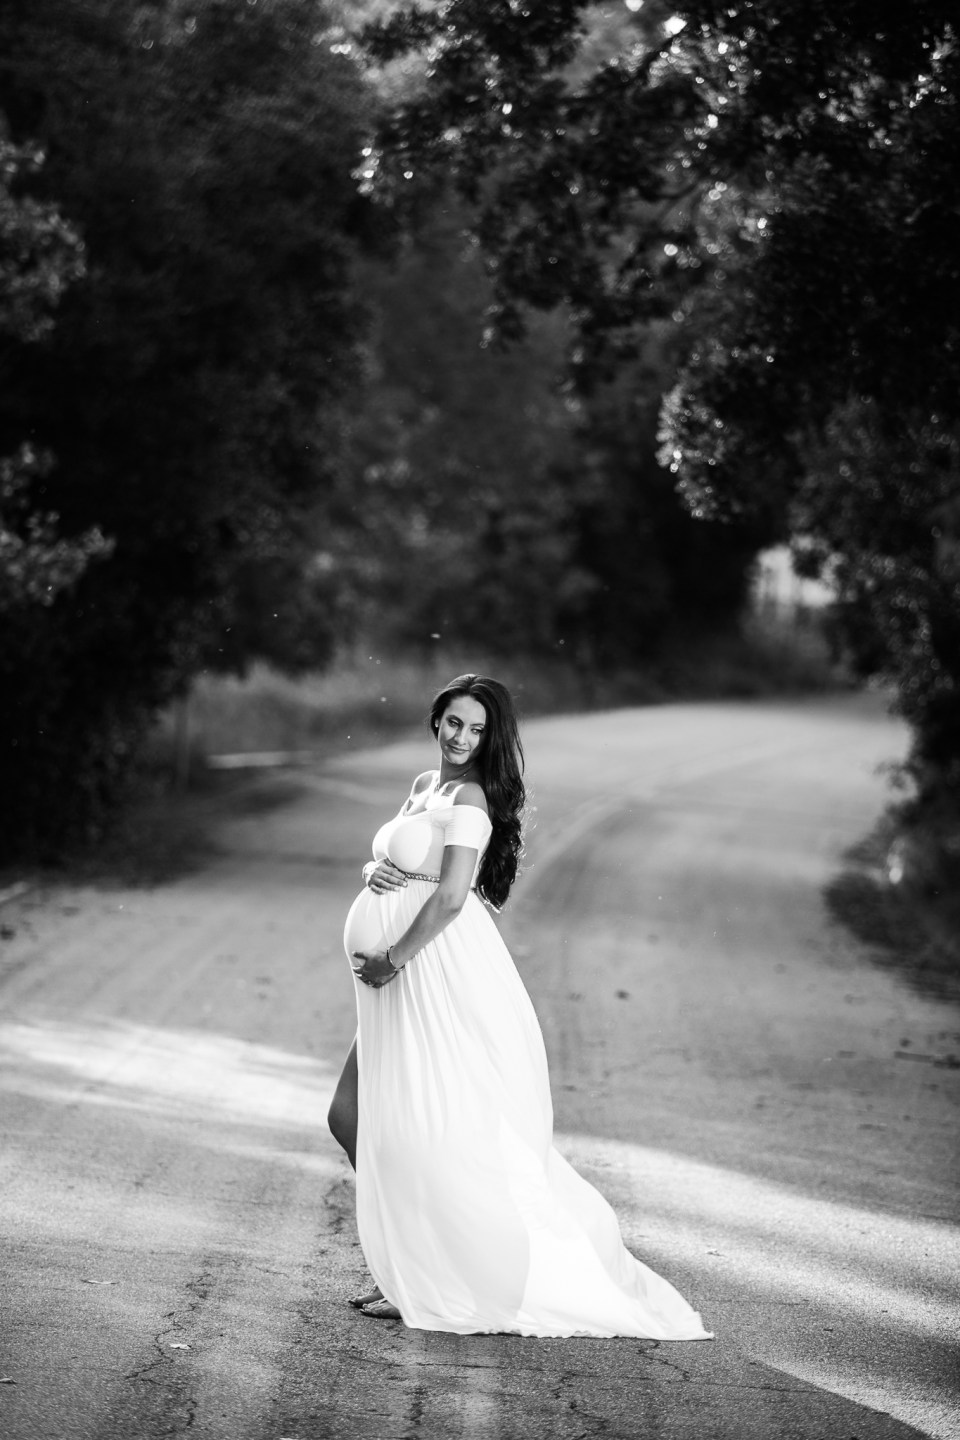 Ashley_Ronnie_Maternity_Pictures_Alviso_Adobe_Park-17